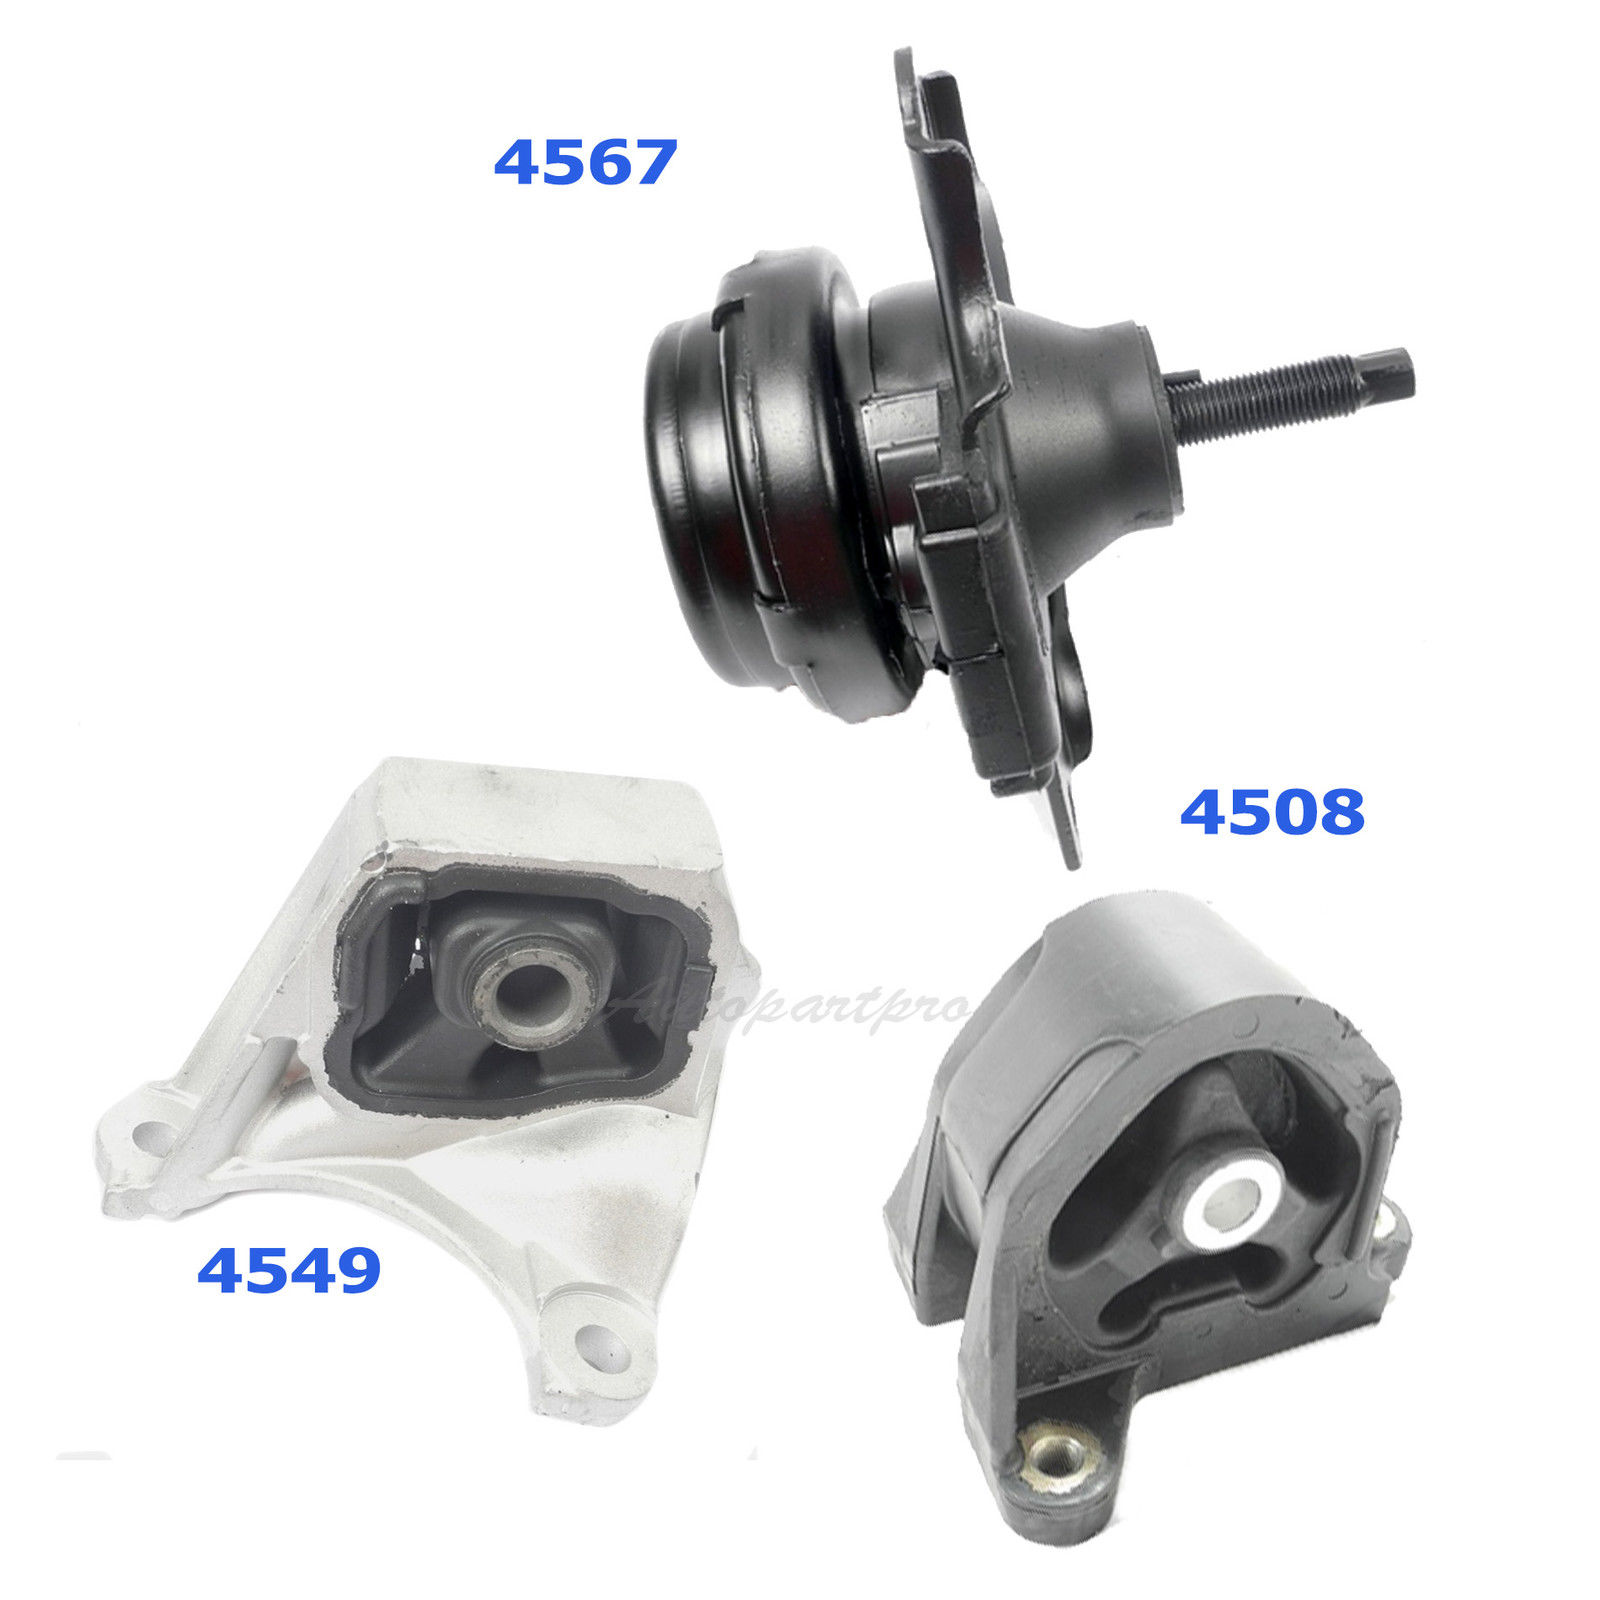 Rear Engine Motor Mount For Acura RSX 2.0L 02-05 Honda Civic Si 2.0L 4508